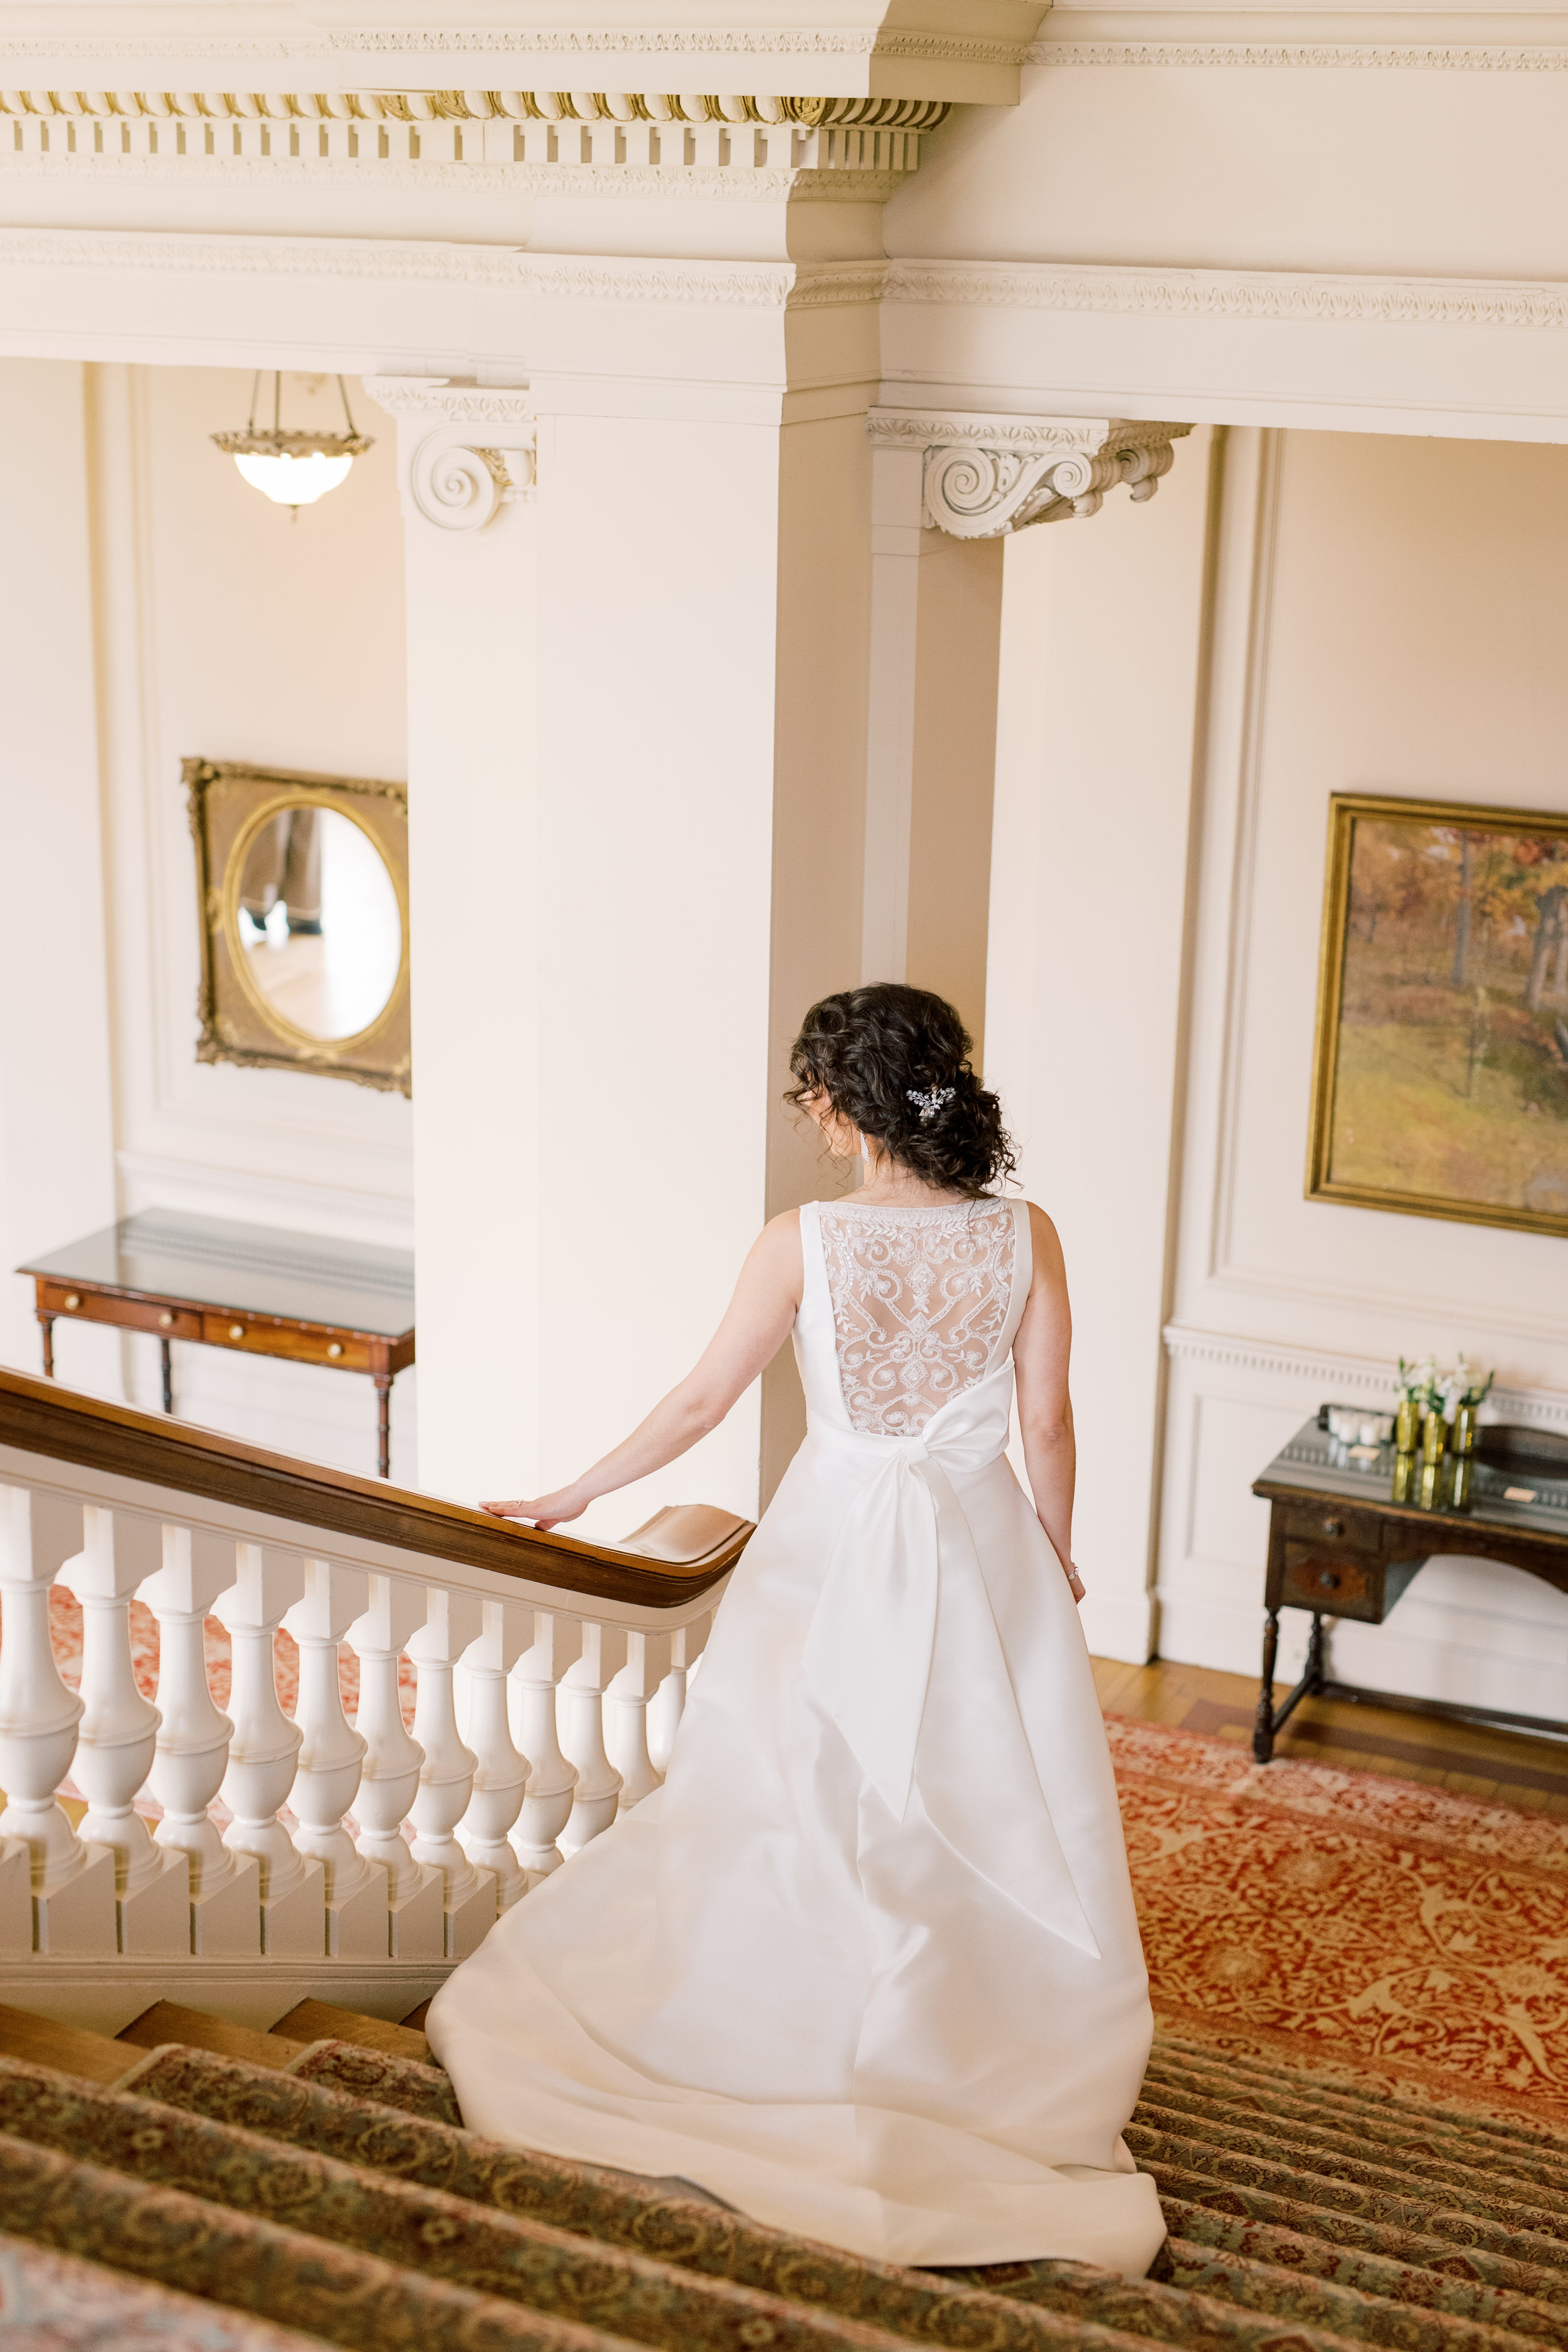 Our bride heads down the grand staircase as she is about to see her groom for the first time at their romantic and classic wedding day for their french inspired green and white Cairnwood Estate wedding